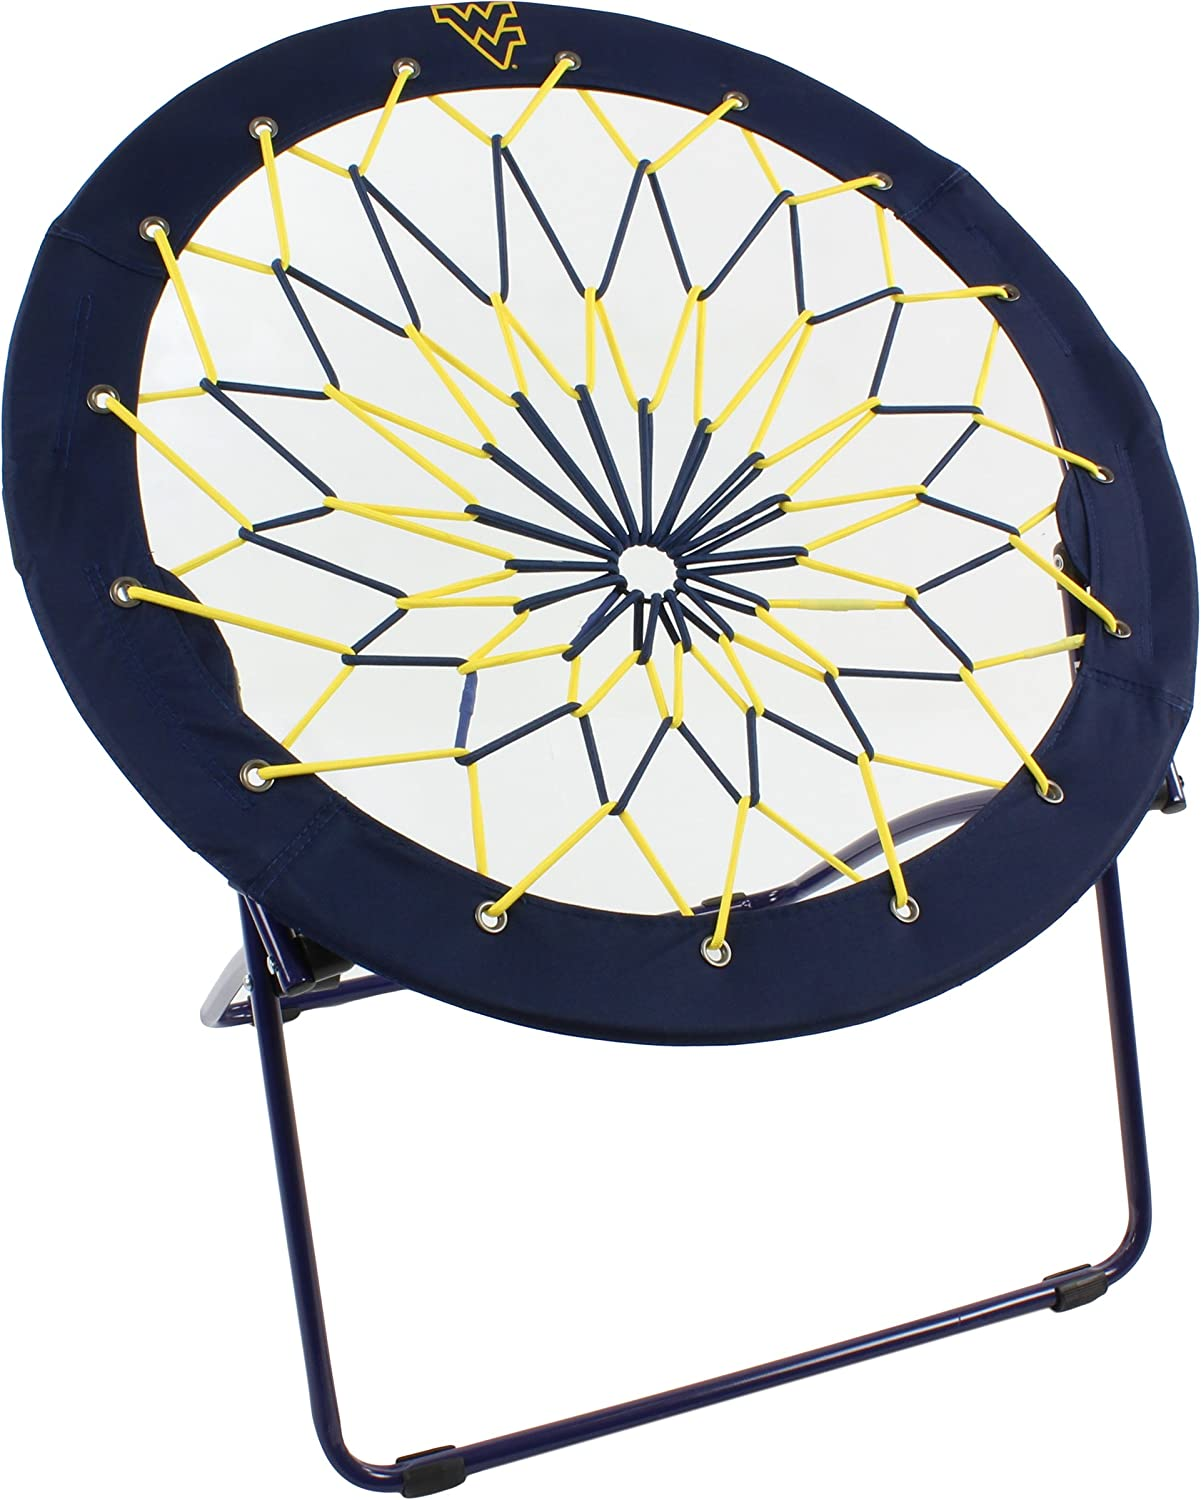 College Raleigh Mall Covers West Direct sale of manufacturer Virginia Chair Mountaineers NCAA Bunjo